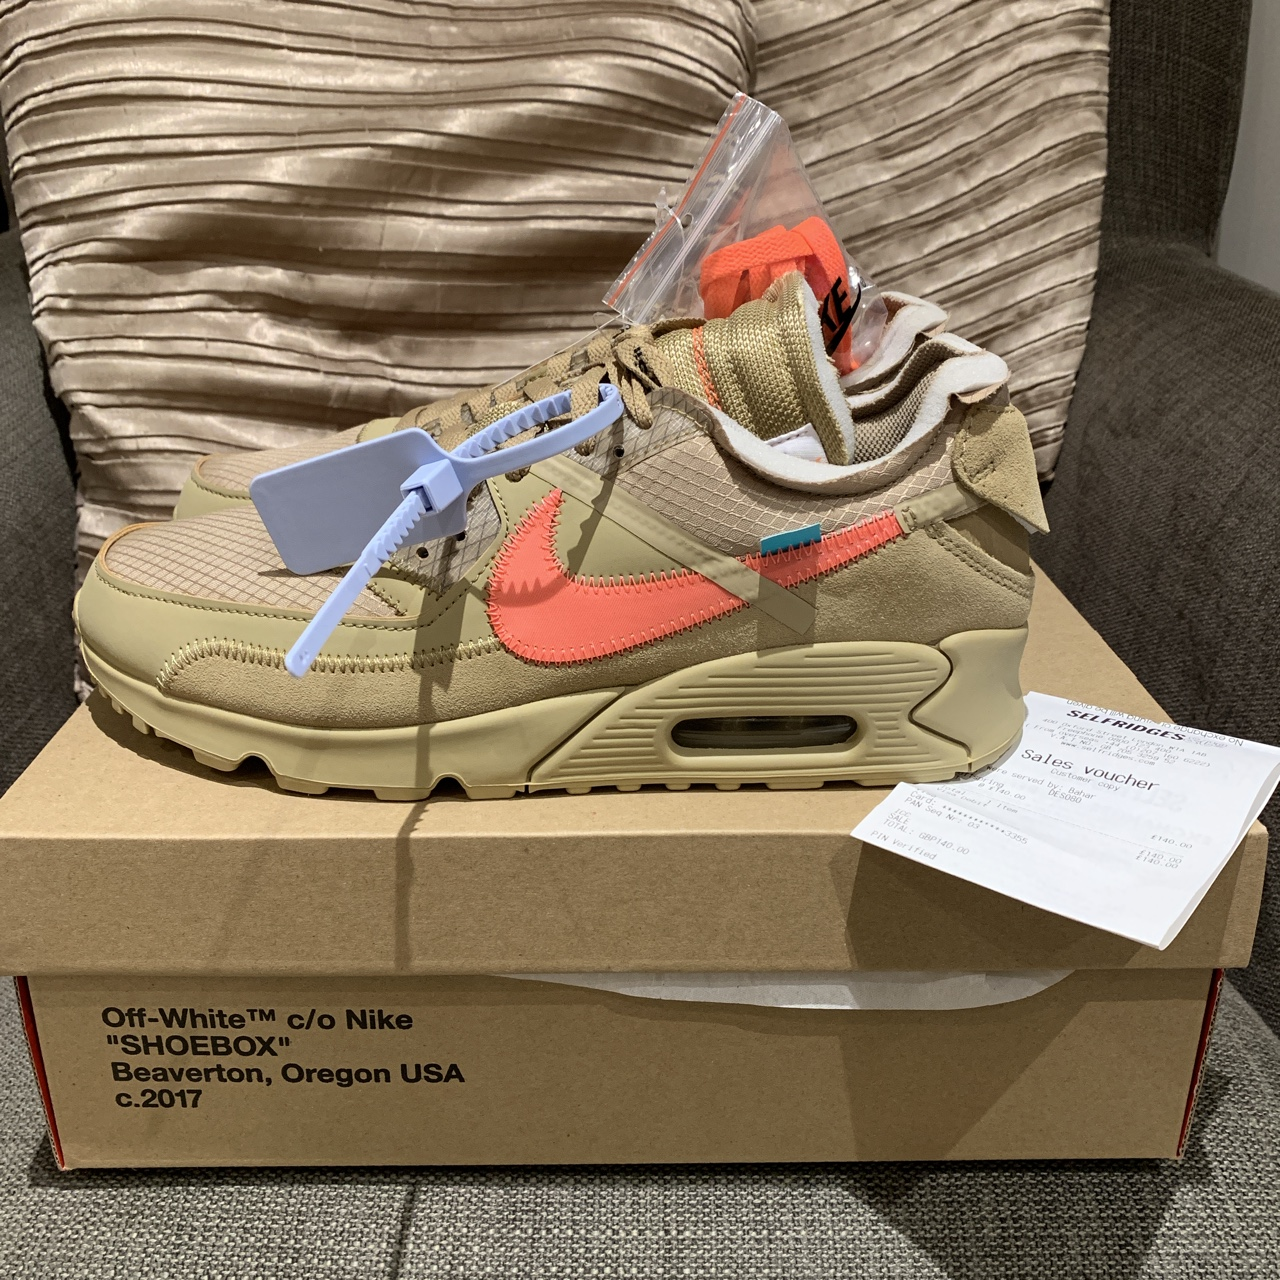 Off White X Nike Air Max 90 Desert Ore UK 8 £420 Depop